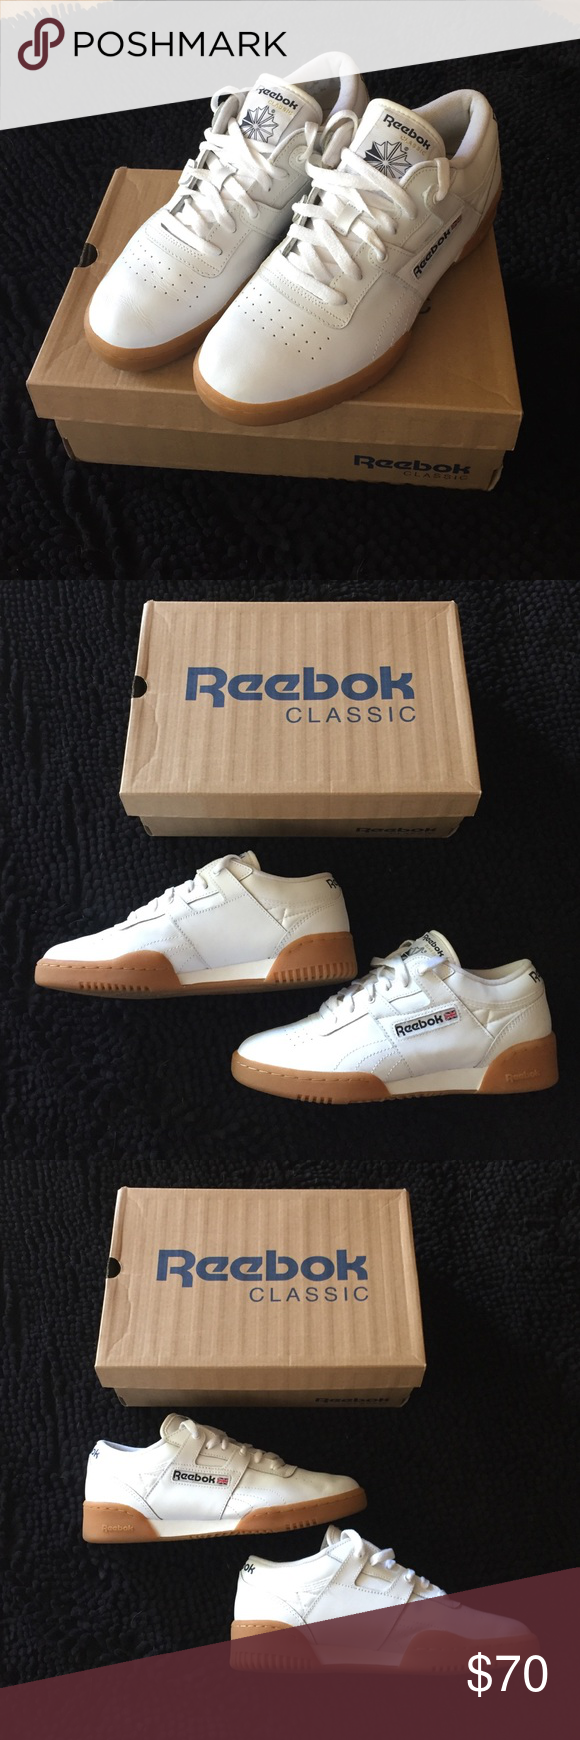 86ffcc78e3f White Reebok Classic Workout Low Gum Sole M7 W 8.5 White Reebok Classic  Workout Low with Gum Sole